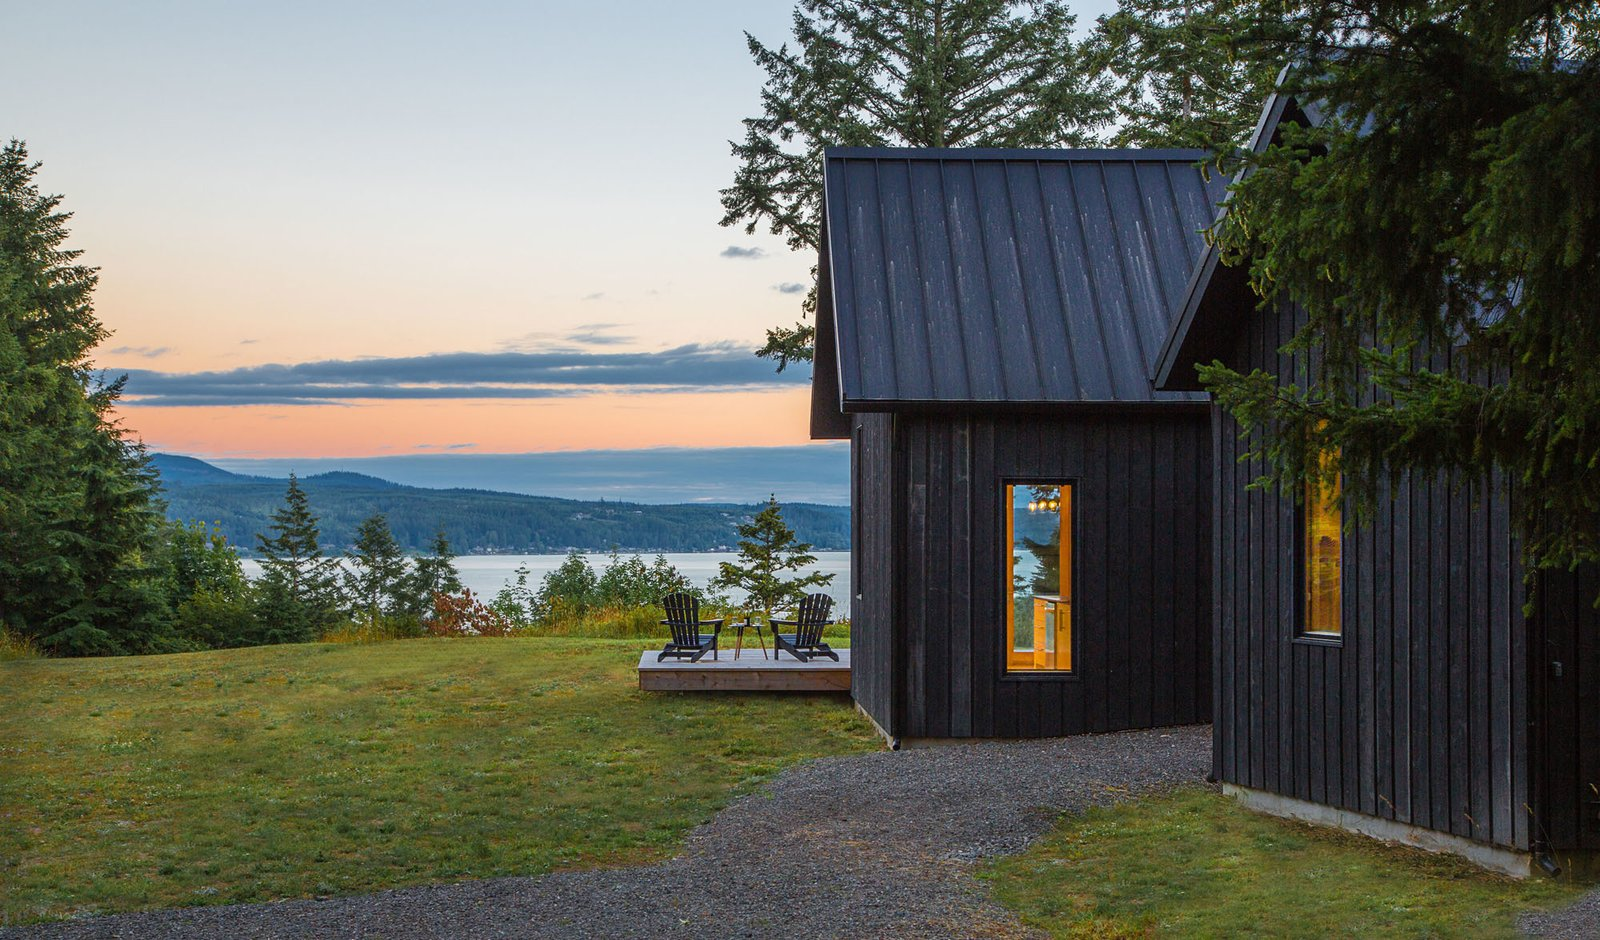 Outdoor Quiet, dark volumes emphasize the natural beauty and views of Hood Canal.  The Coyle by Prentiss + Balance + Wickline Architects